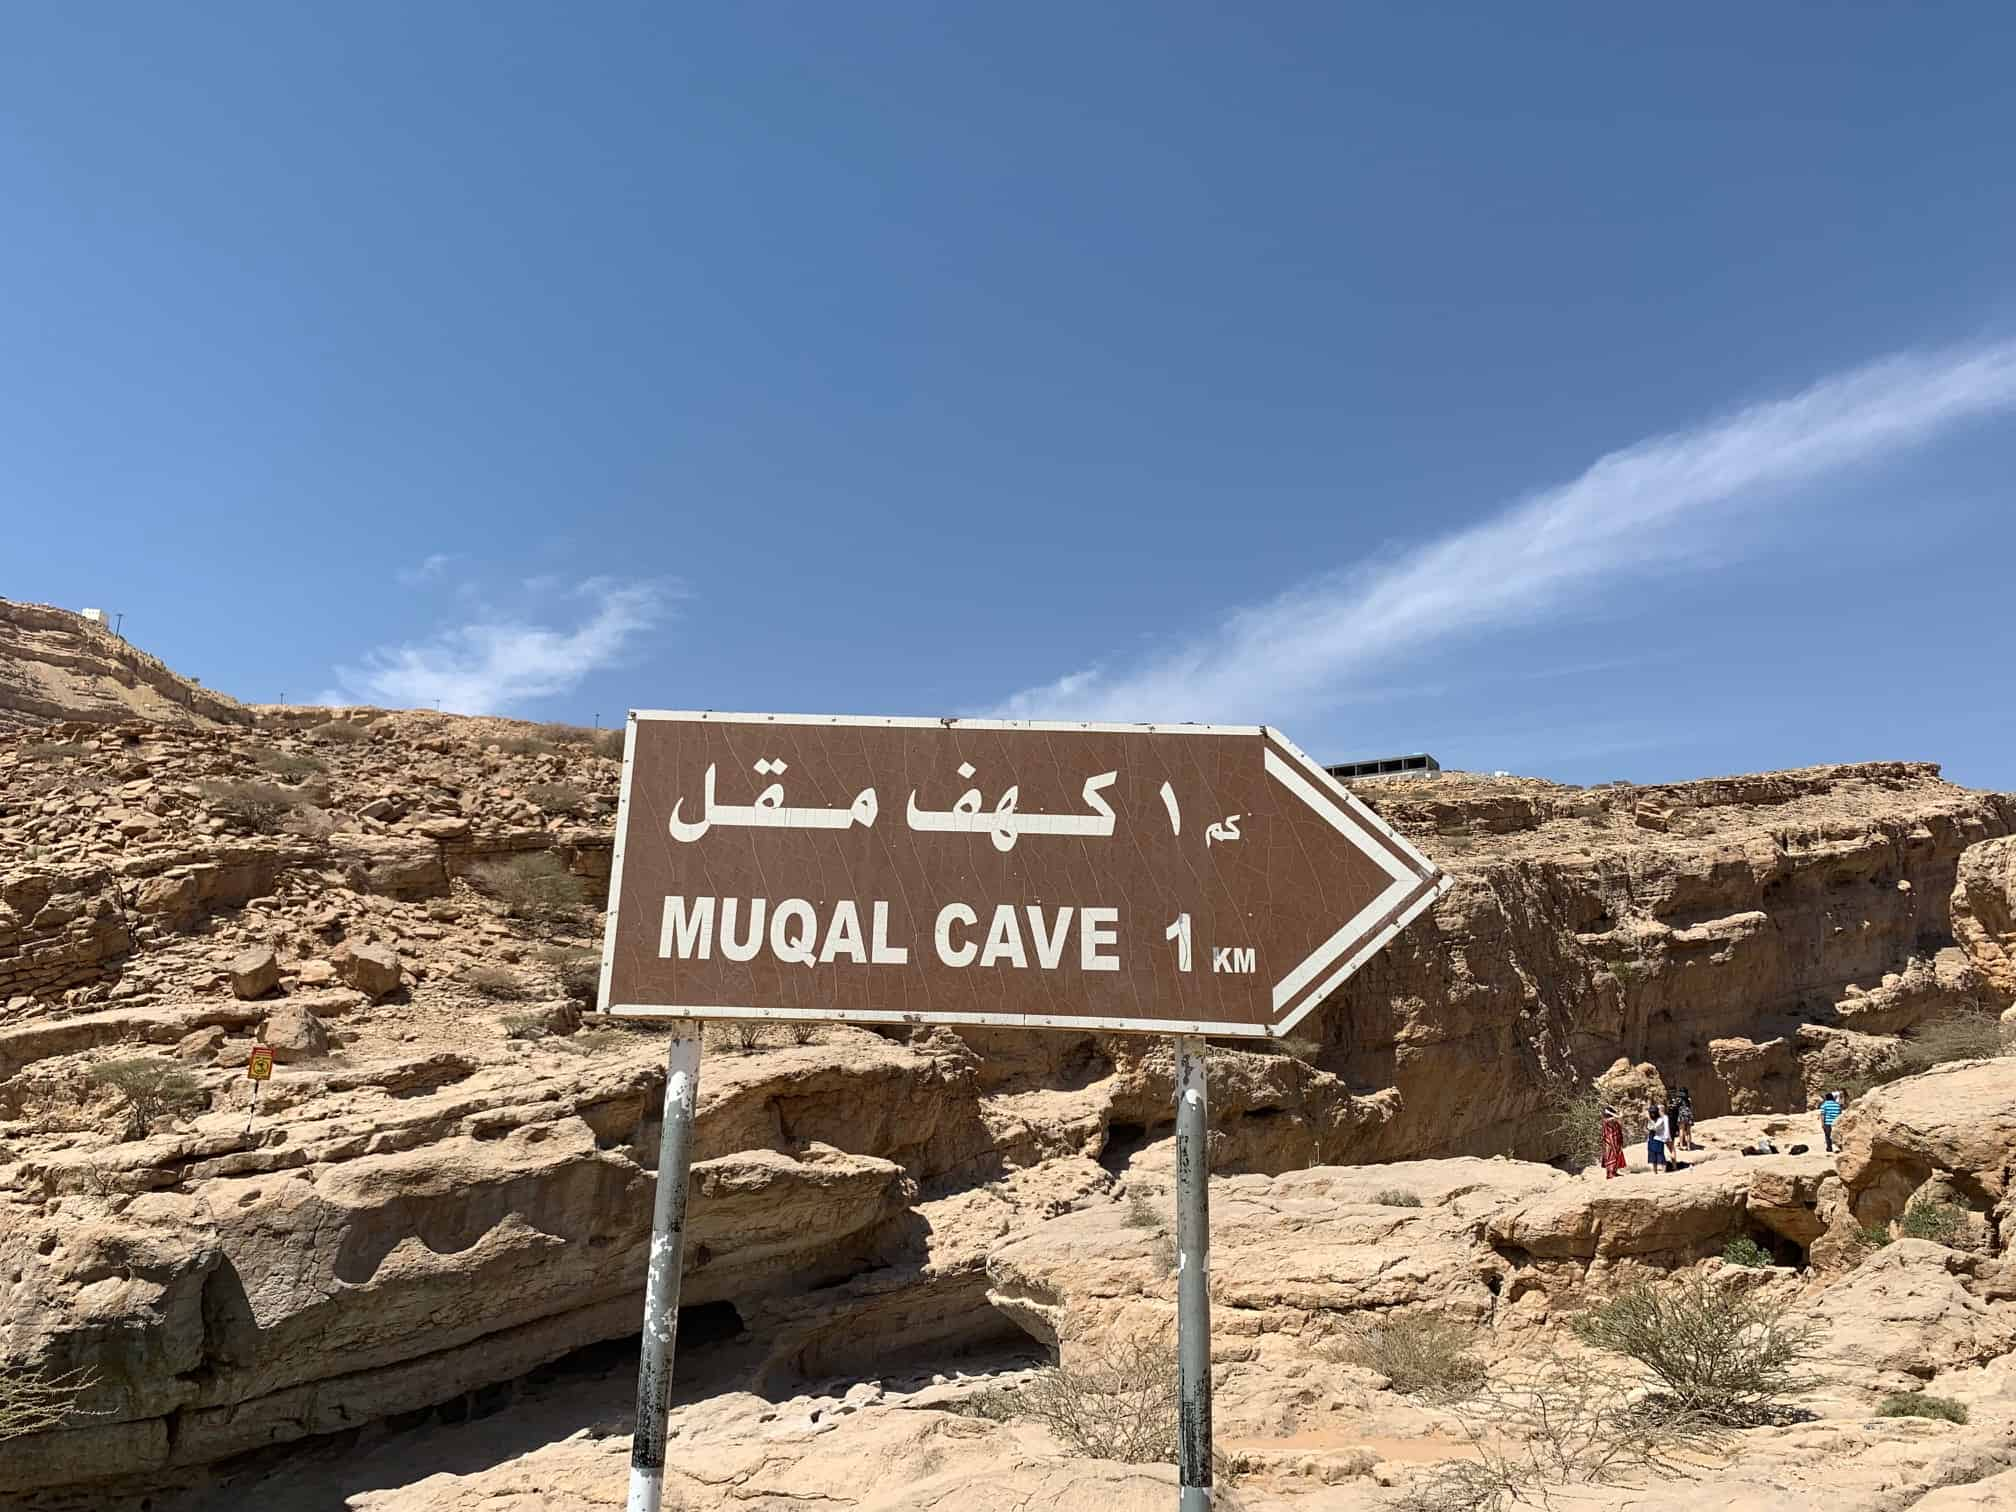 The sign to the Muqal Cave at Wadi Bani Khalid